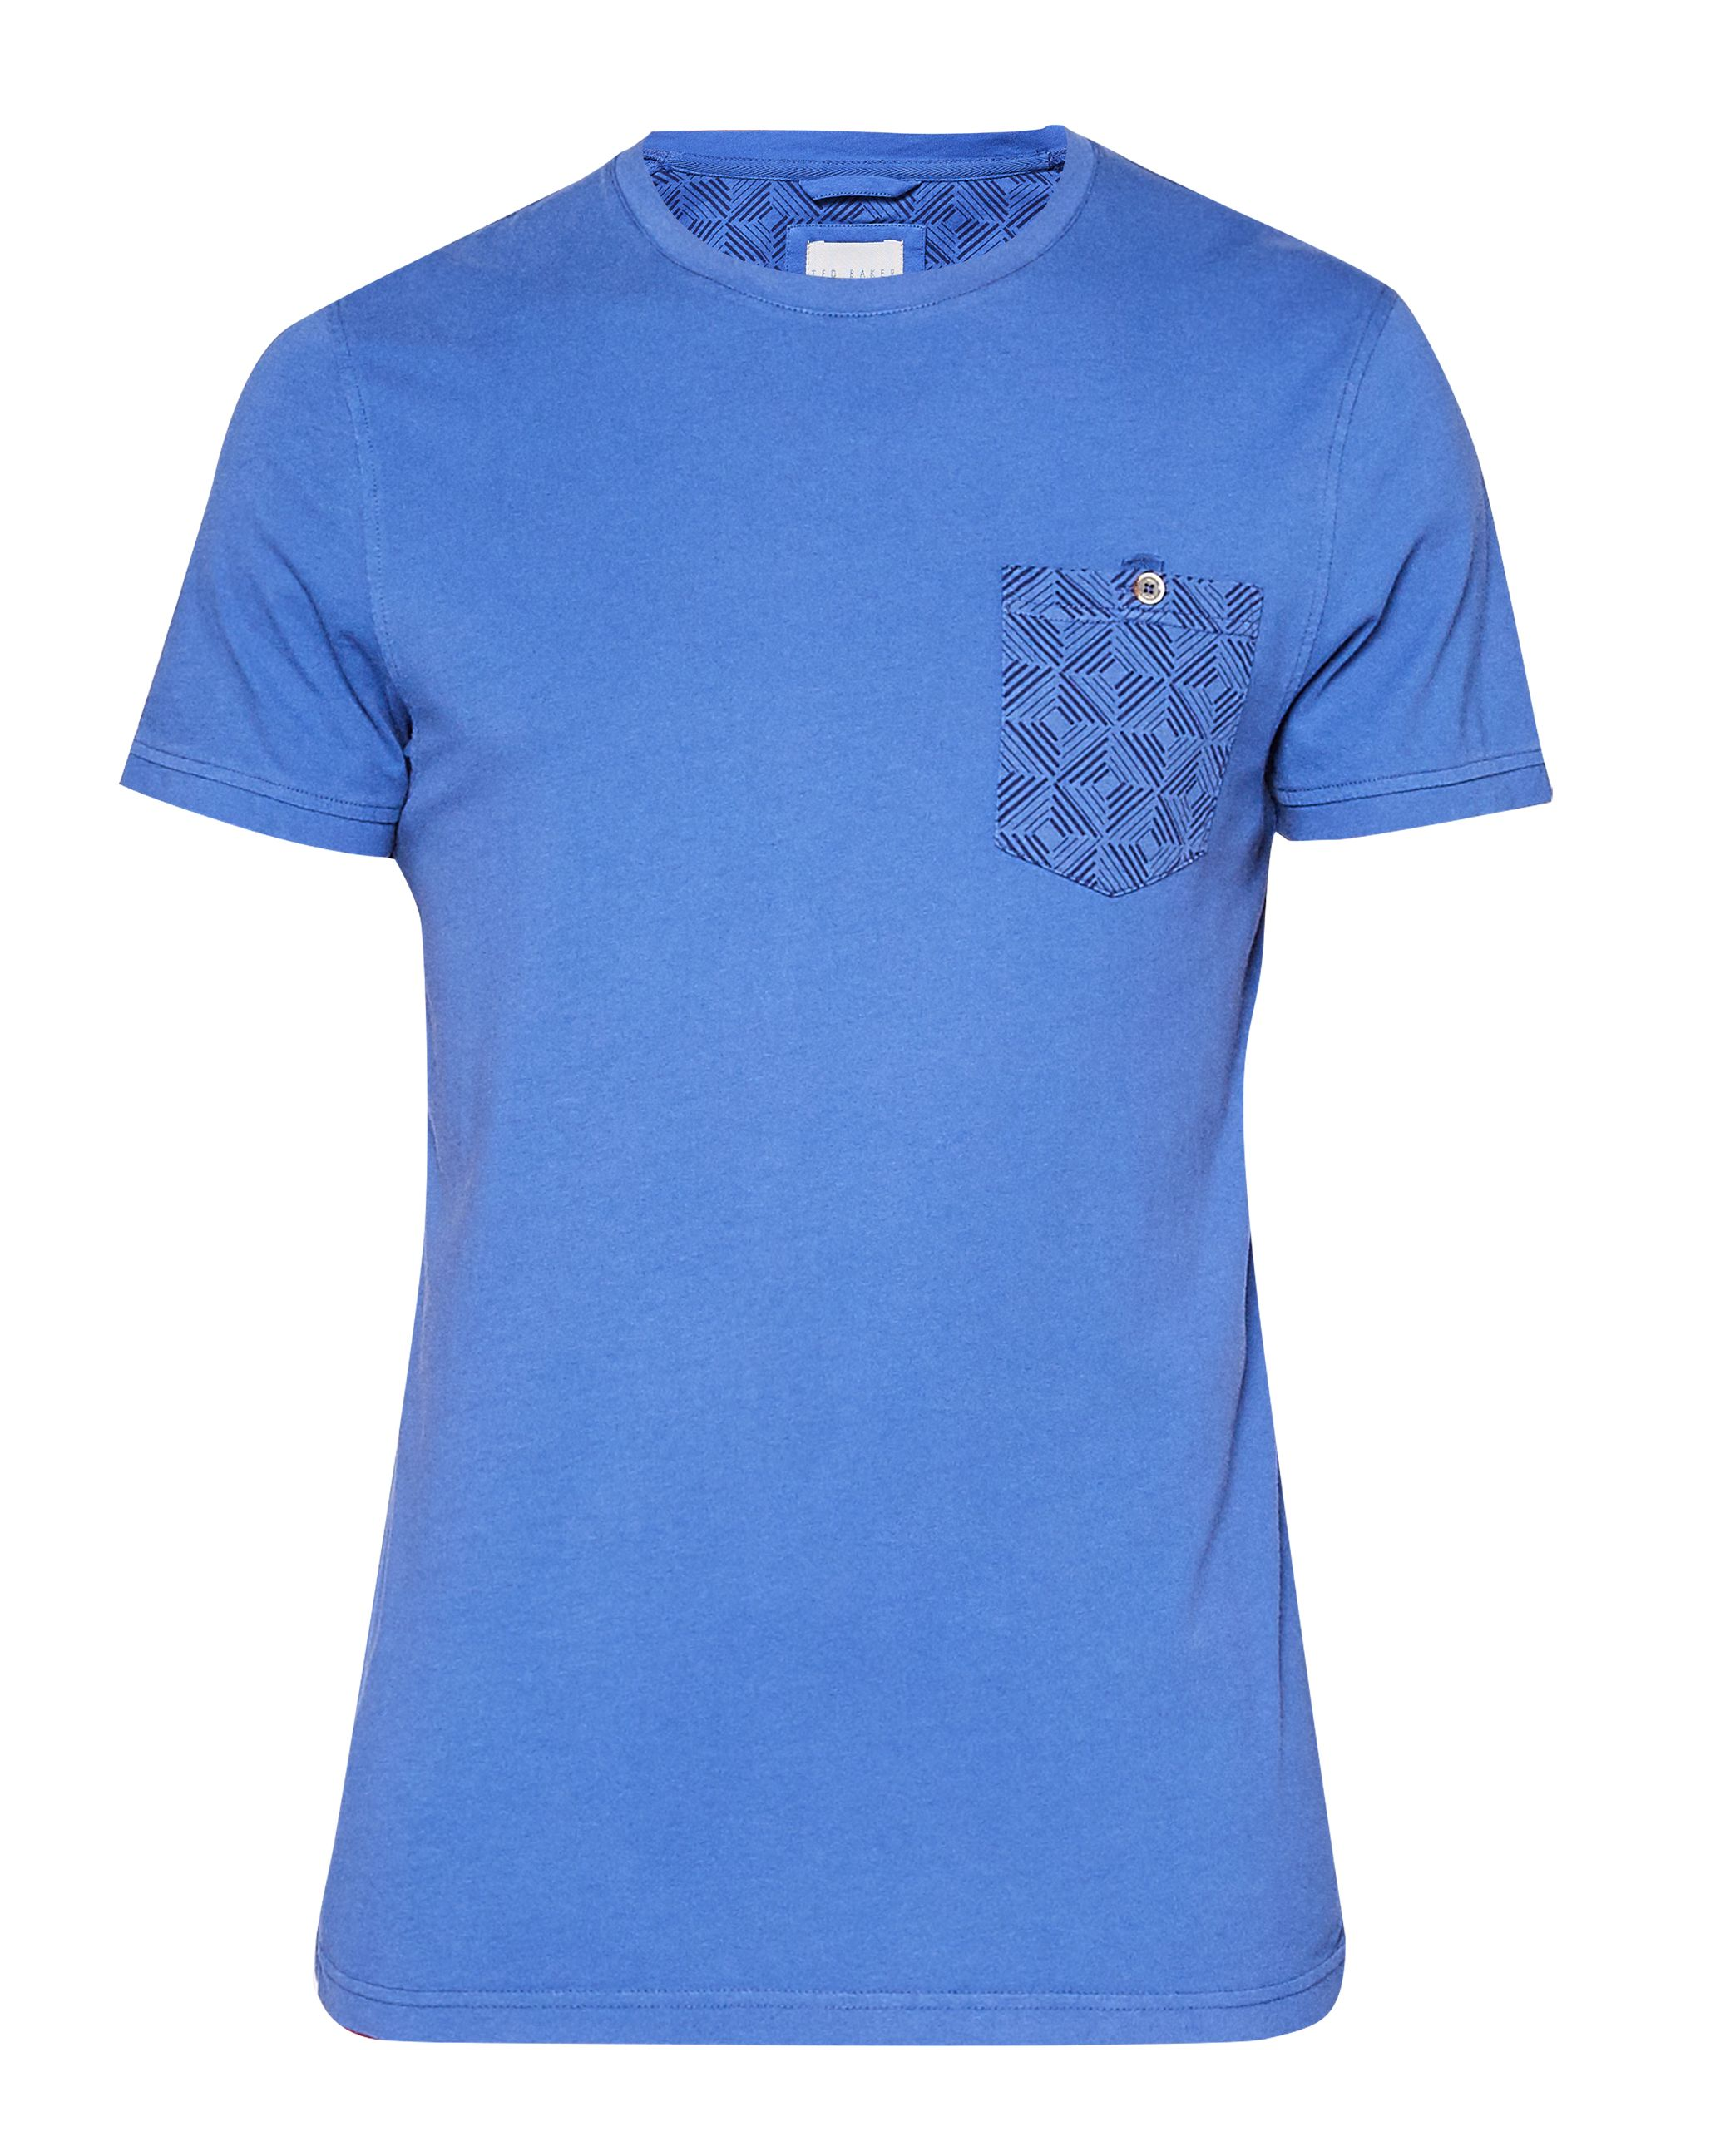 Men's Ted Baker Bothy Geo Print Pocket Cotton T-Shirt, Blue